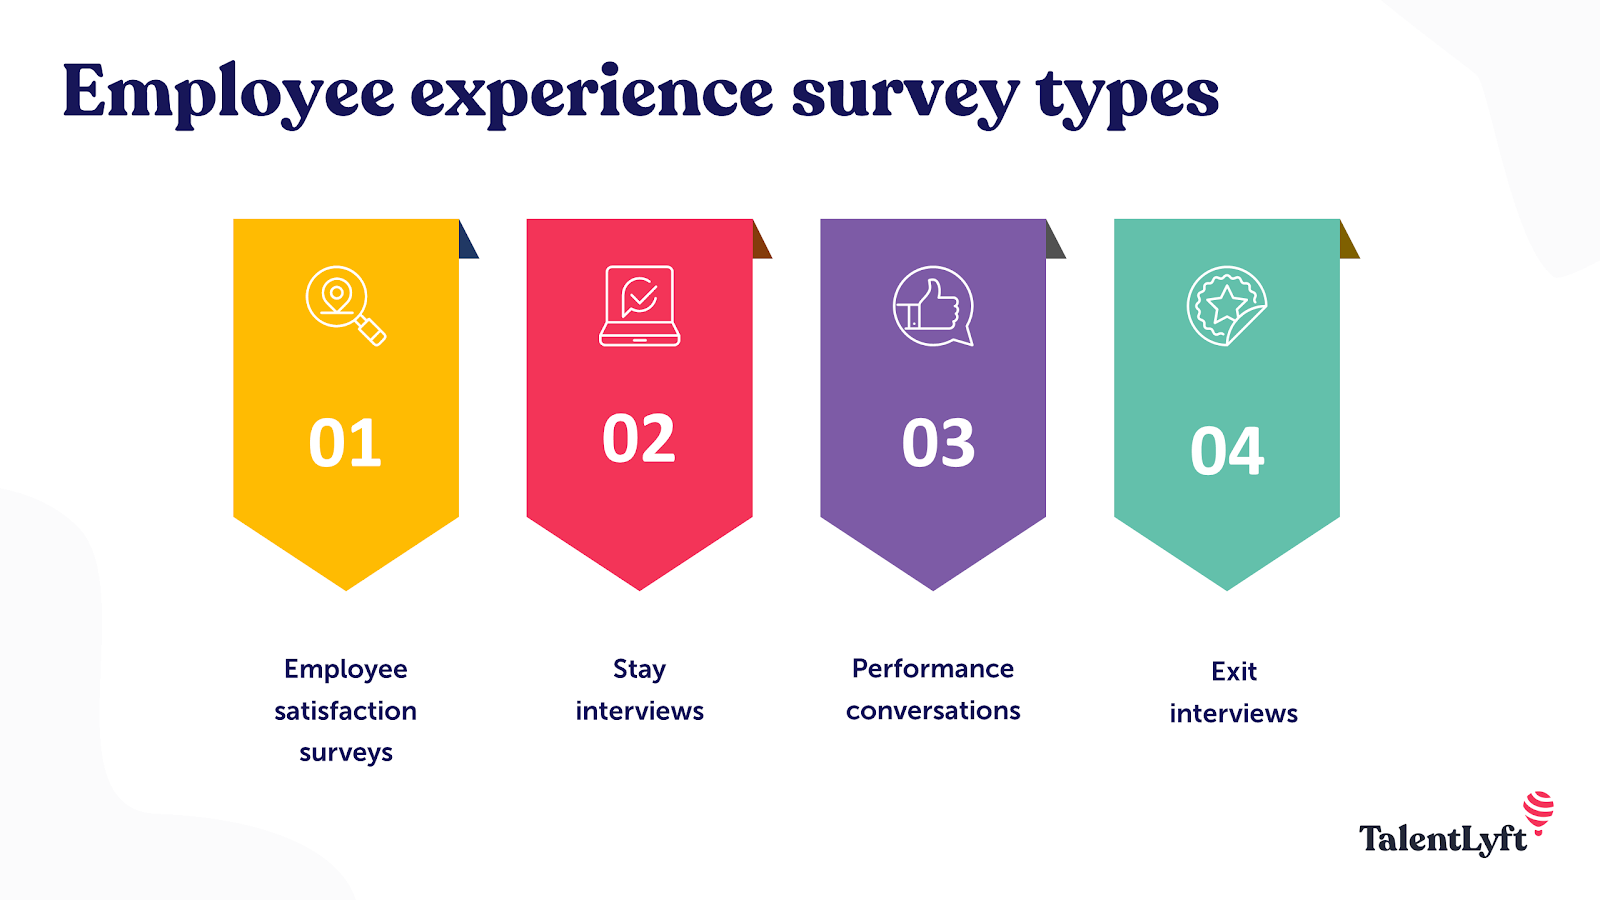 Employee experience survey types